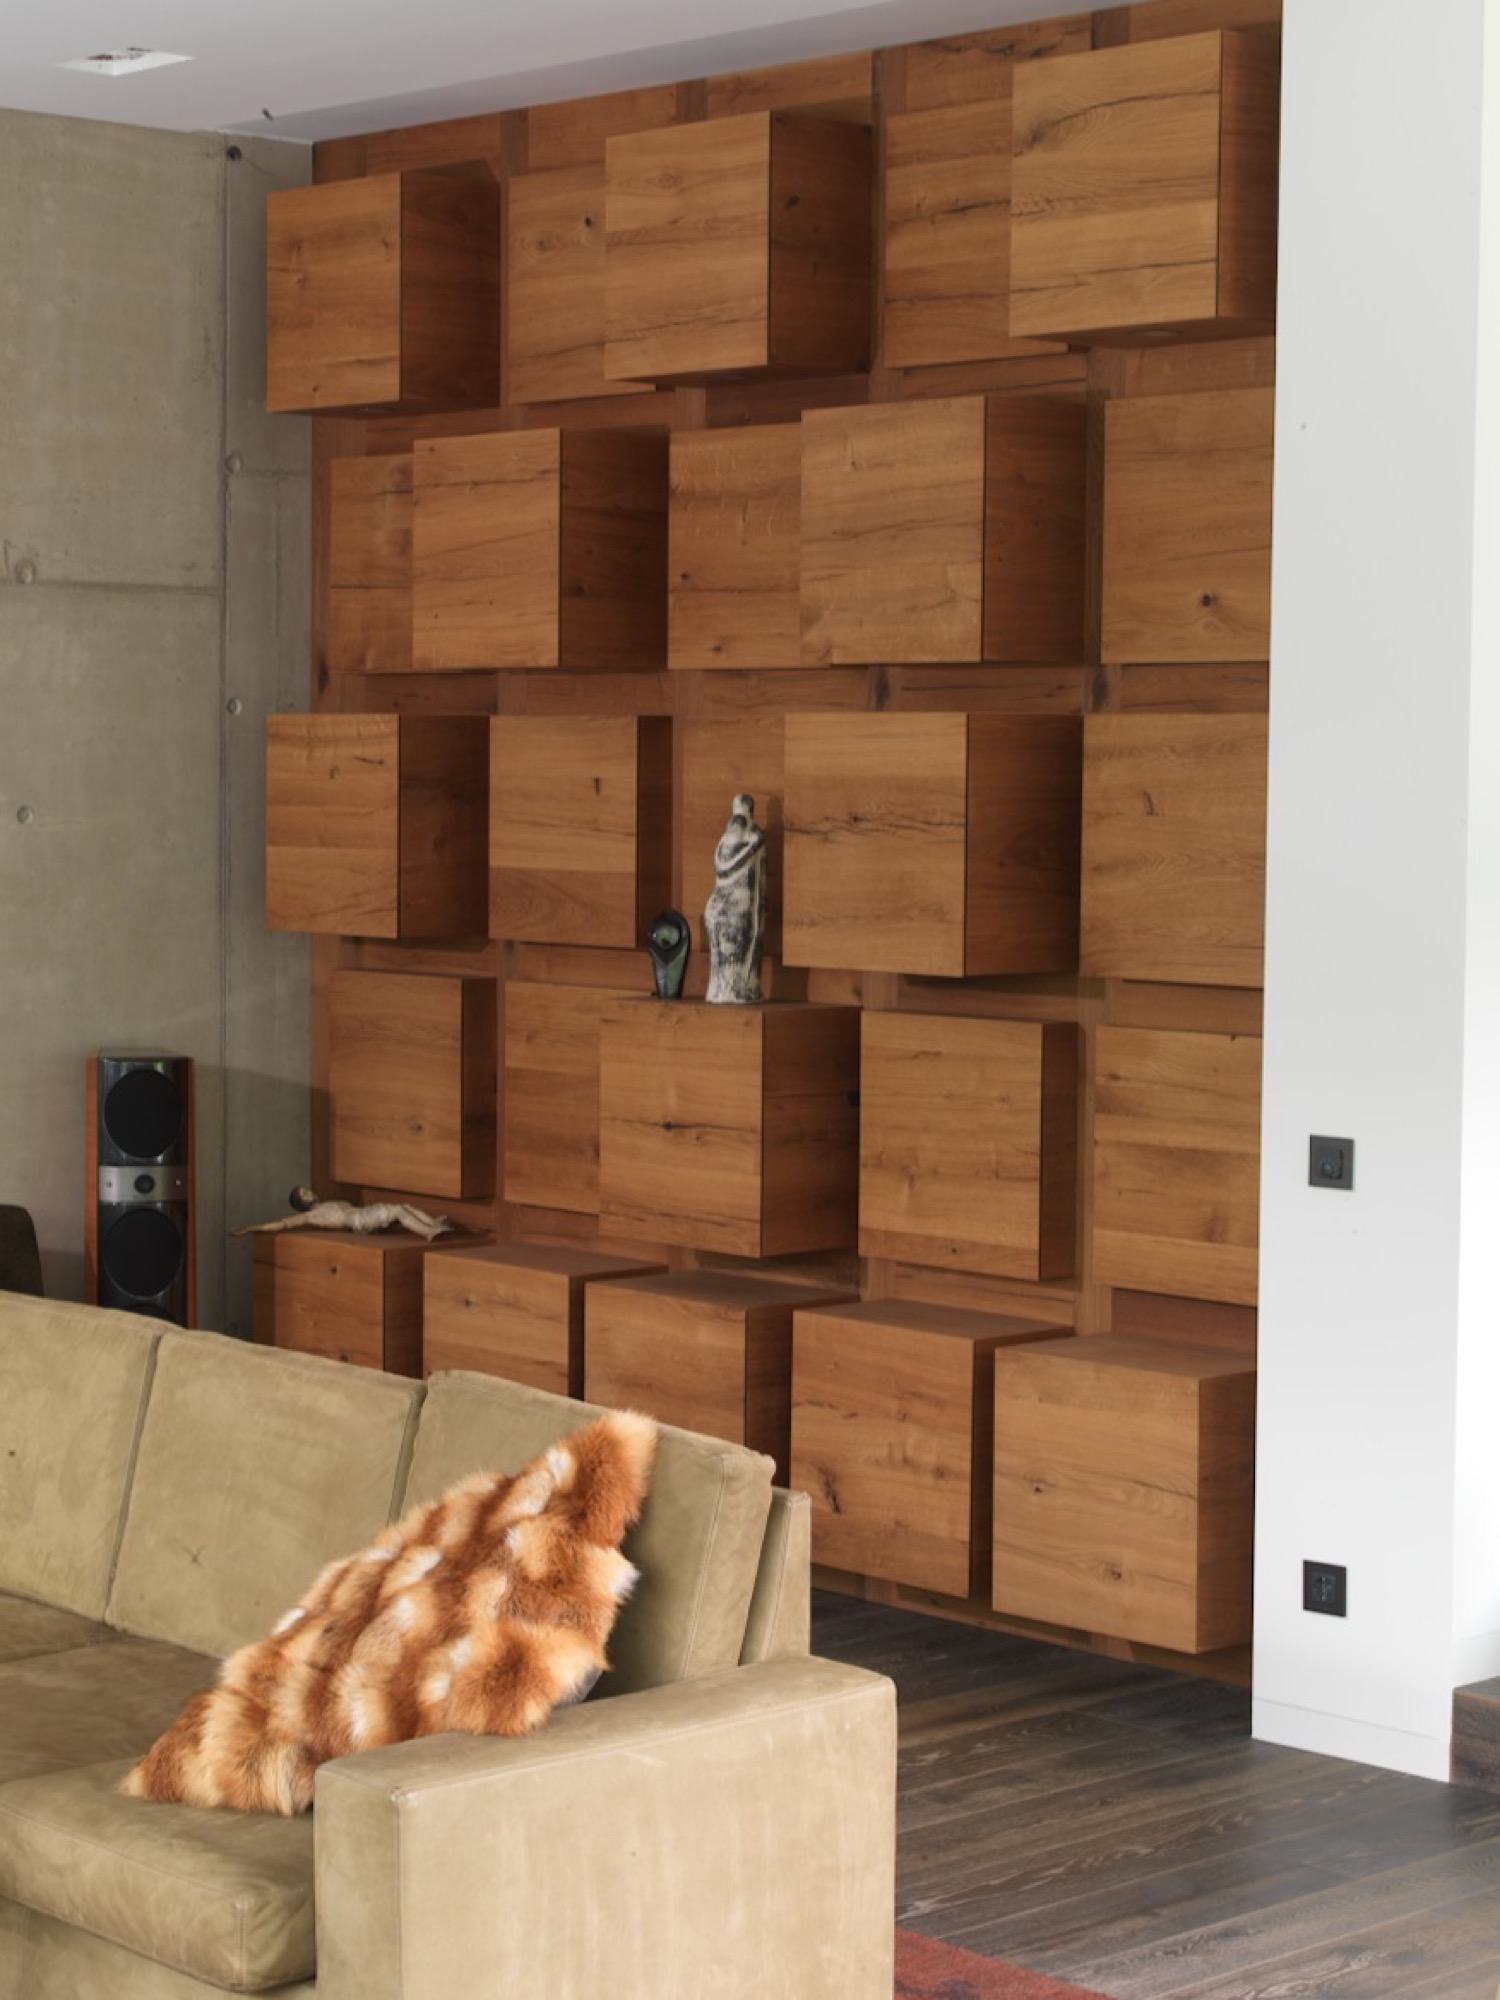 The same wooden cubes serve as armoire and shelving units in the living room and along the facade.